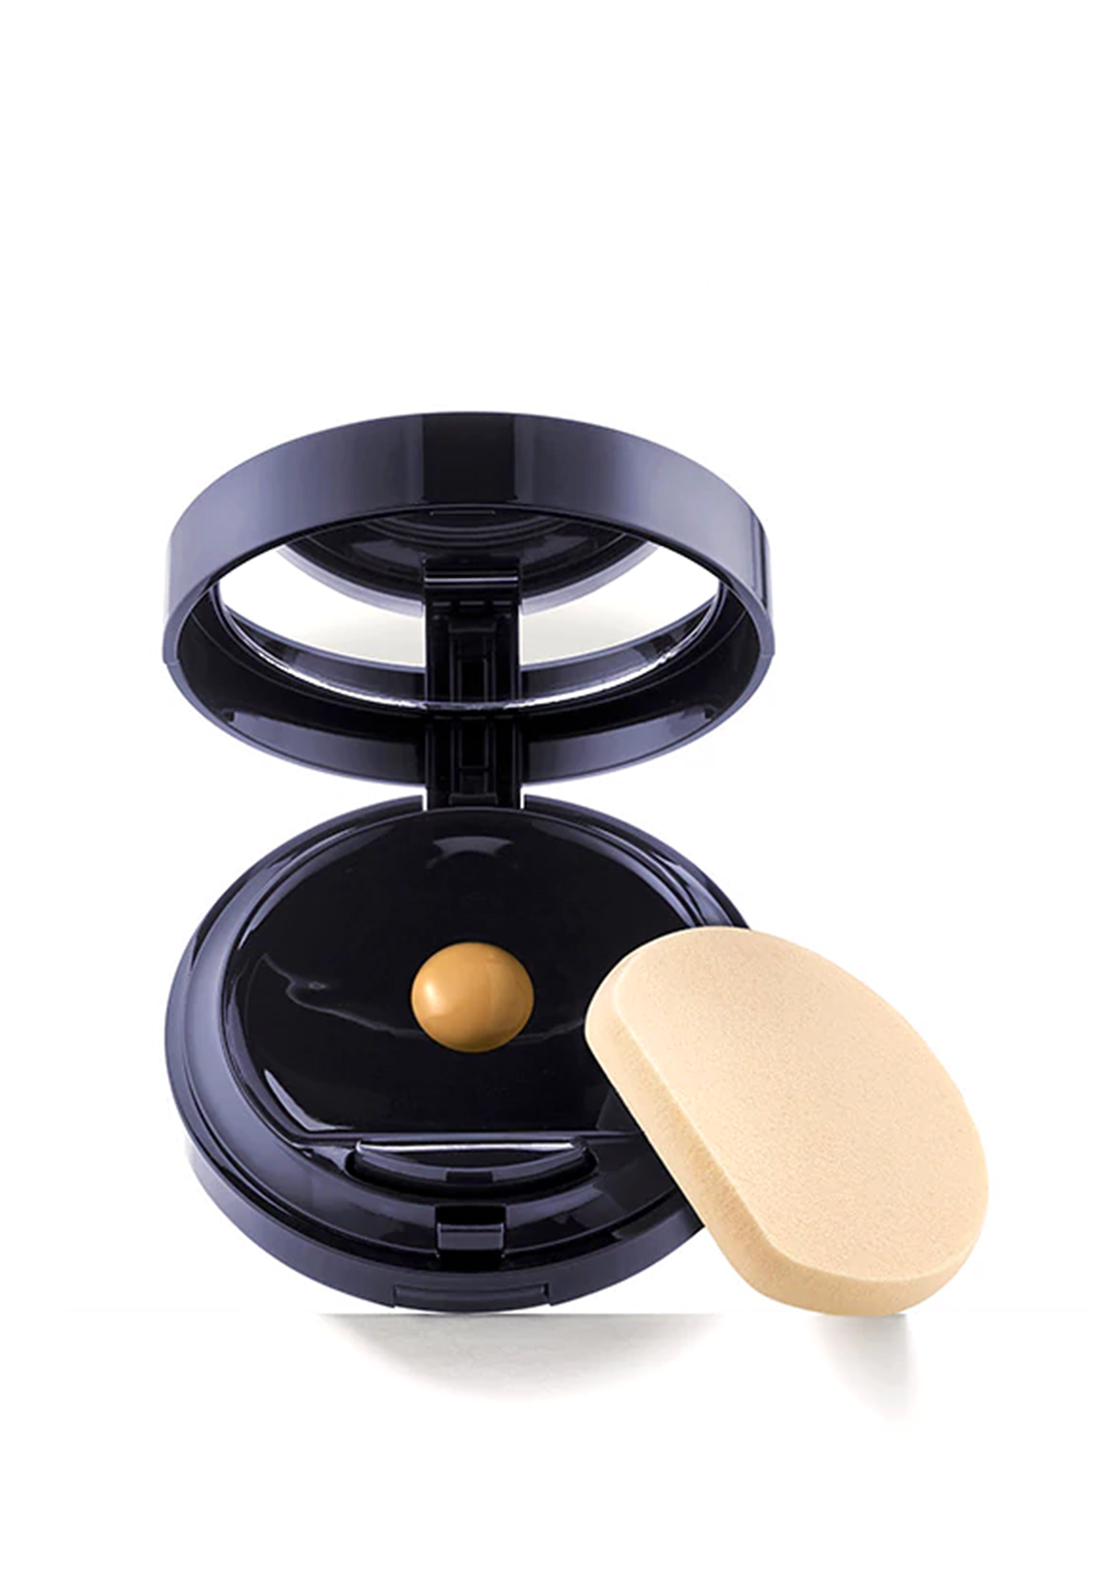 Estee Lauder Double Wear Make Up to Go Liquid Compact, Shell Beige